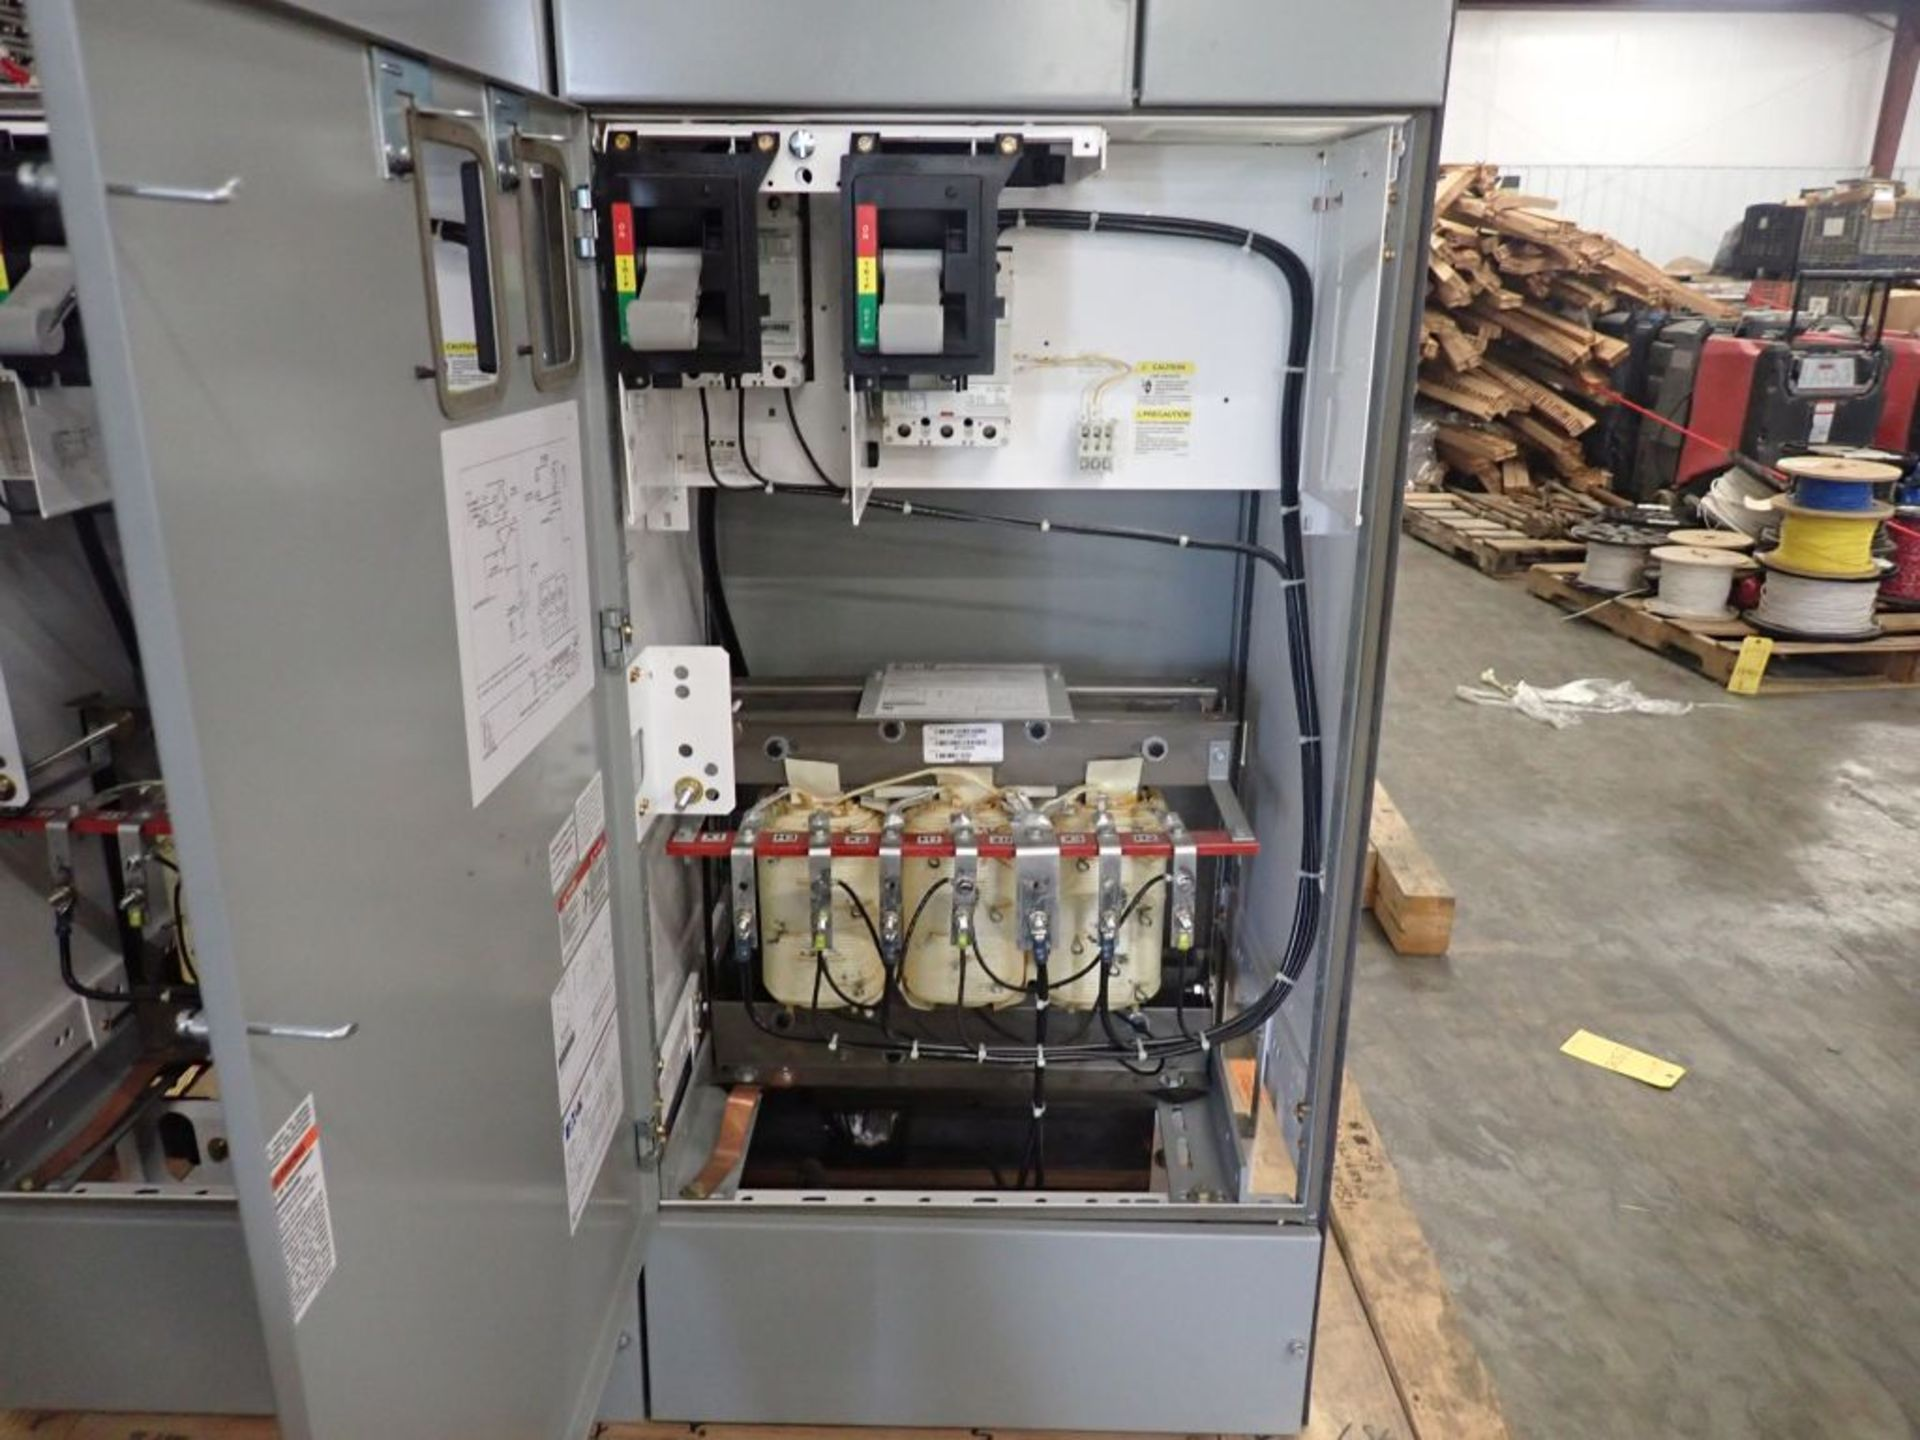 Eaton Freedom 2100 Series Motor Control Center | (2) F208-30A; (1) F208-40A; (1) FDRB-50A; (2) - Image 33 of 37